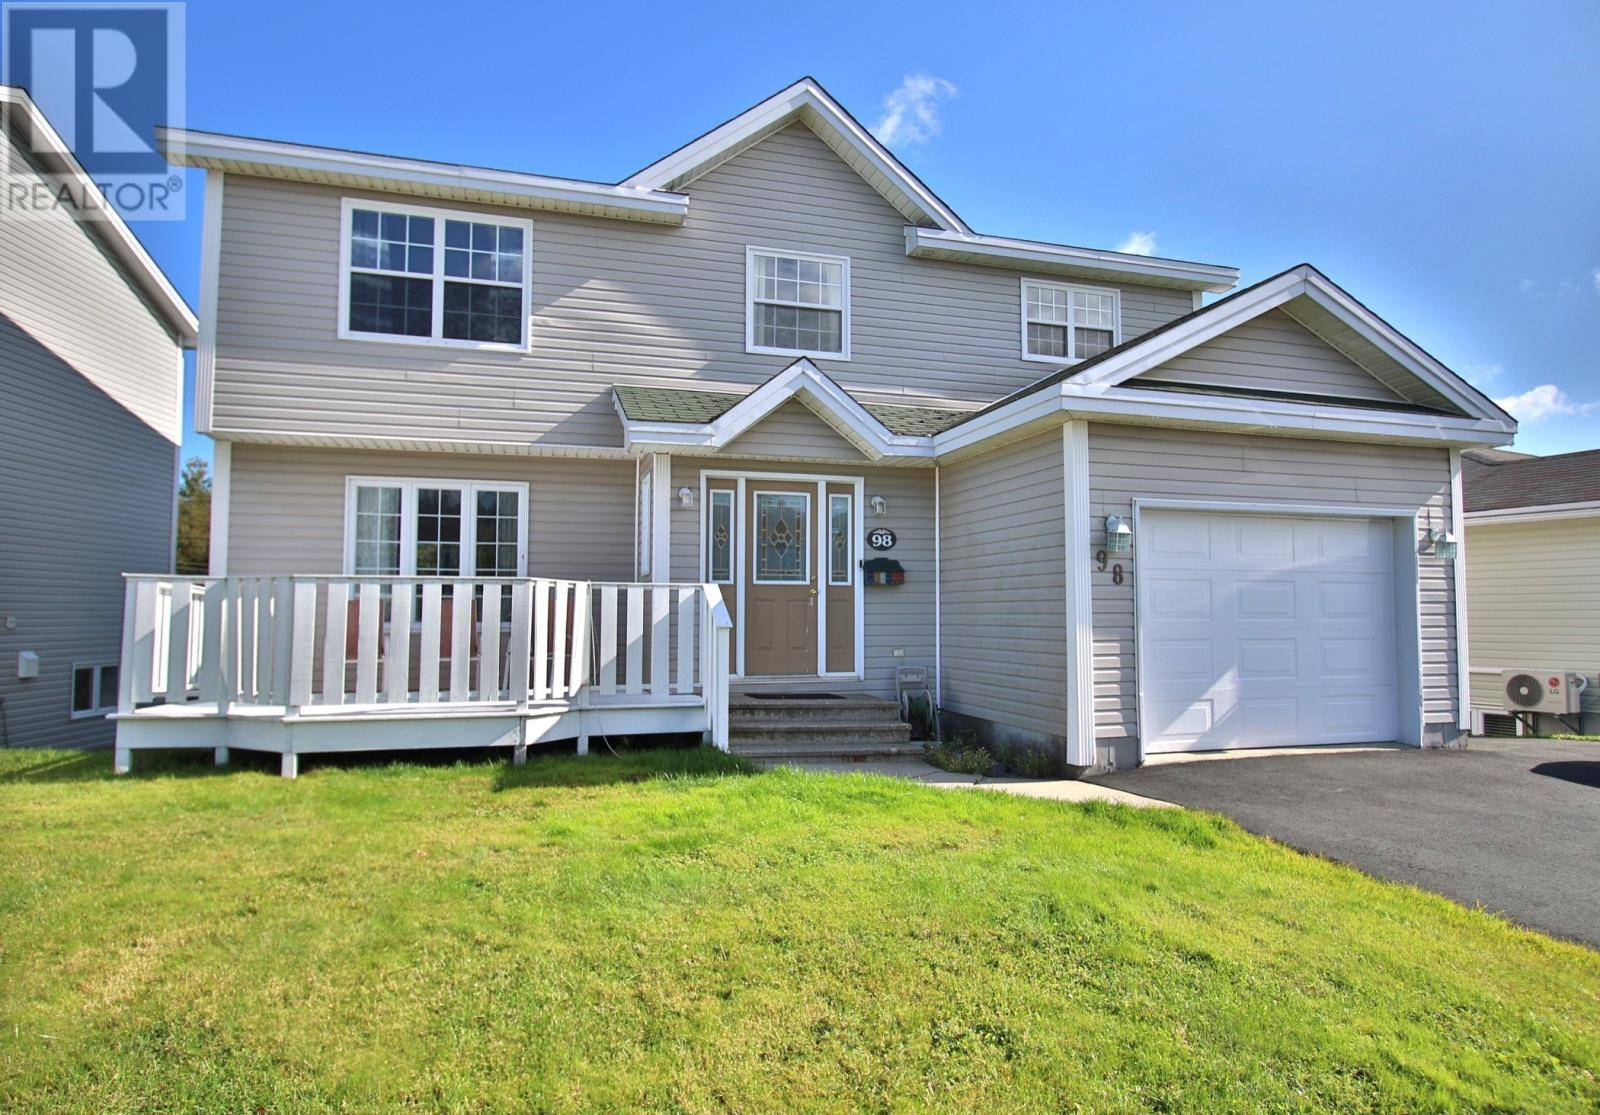 House for sale at 98 Penney Cres St. John's Newfoundland - MLS: 1205090